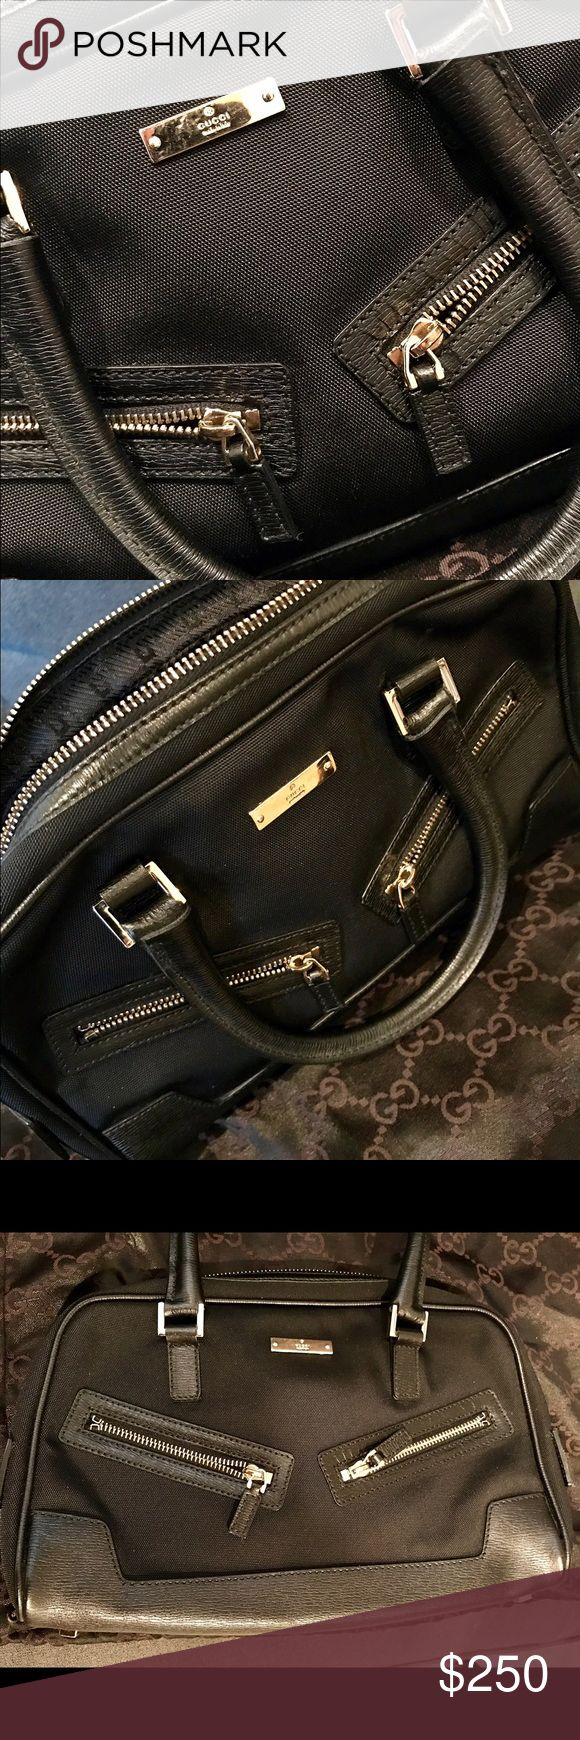 Authentic Gucci bag NEW / Unused Black Leather and canvas Gucci Bag. Perfect condition (unused). Comes with dust bag.    *Price Negotiable* Gucci Bags Mini Bags